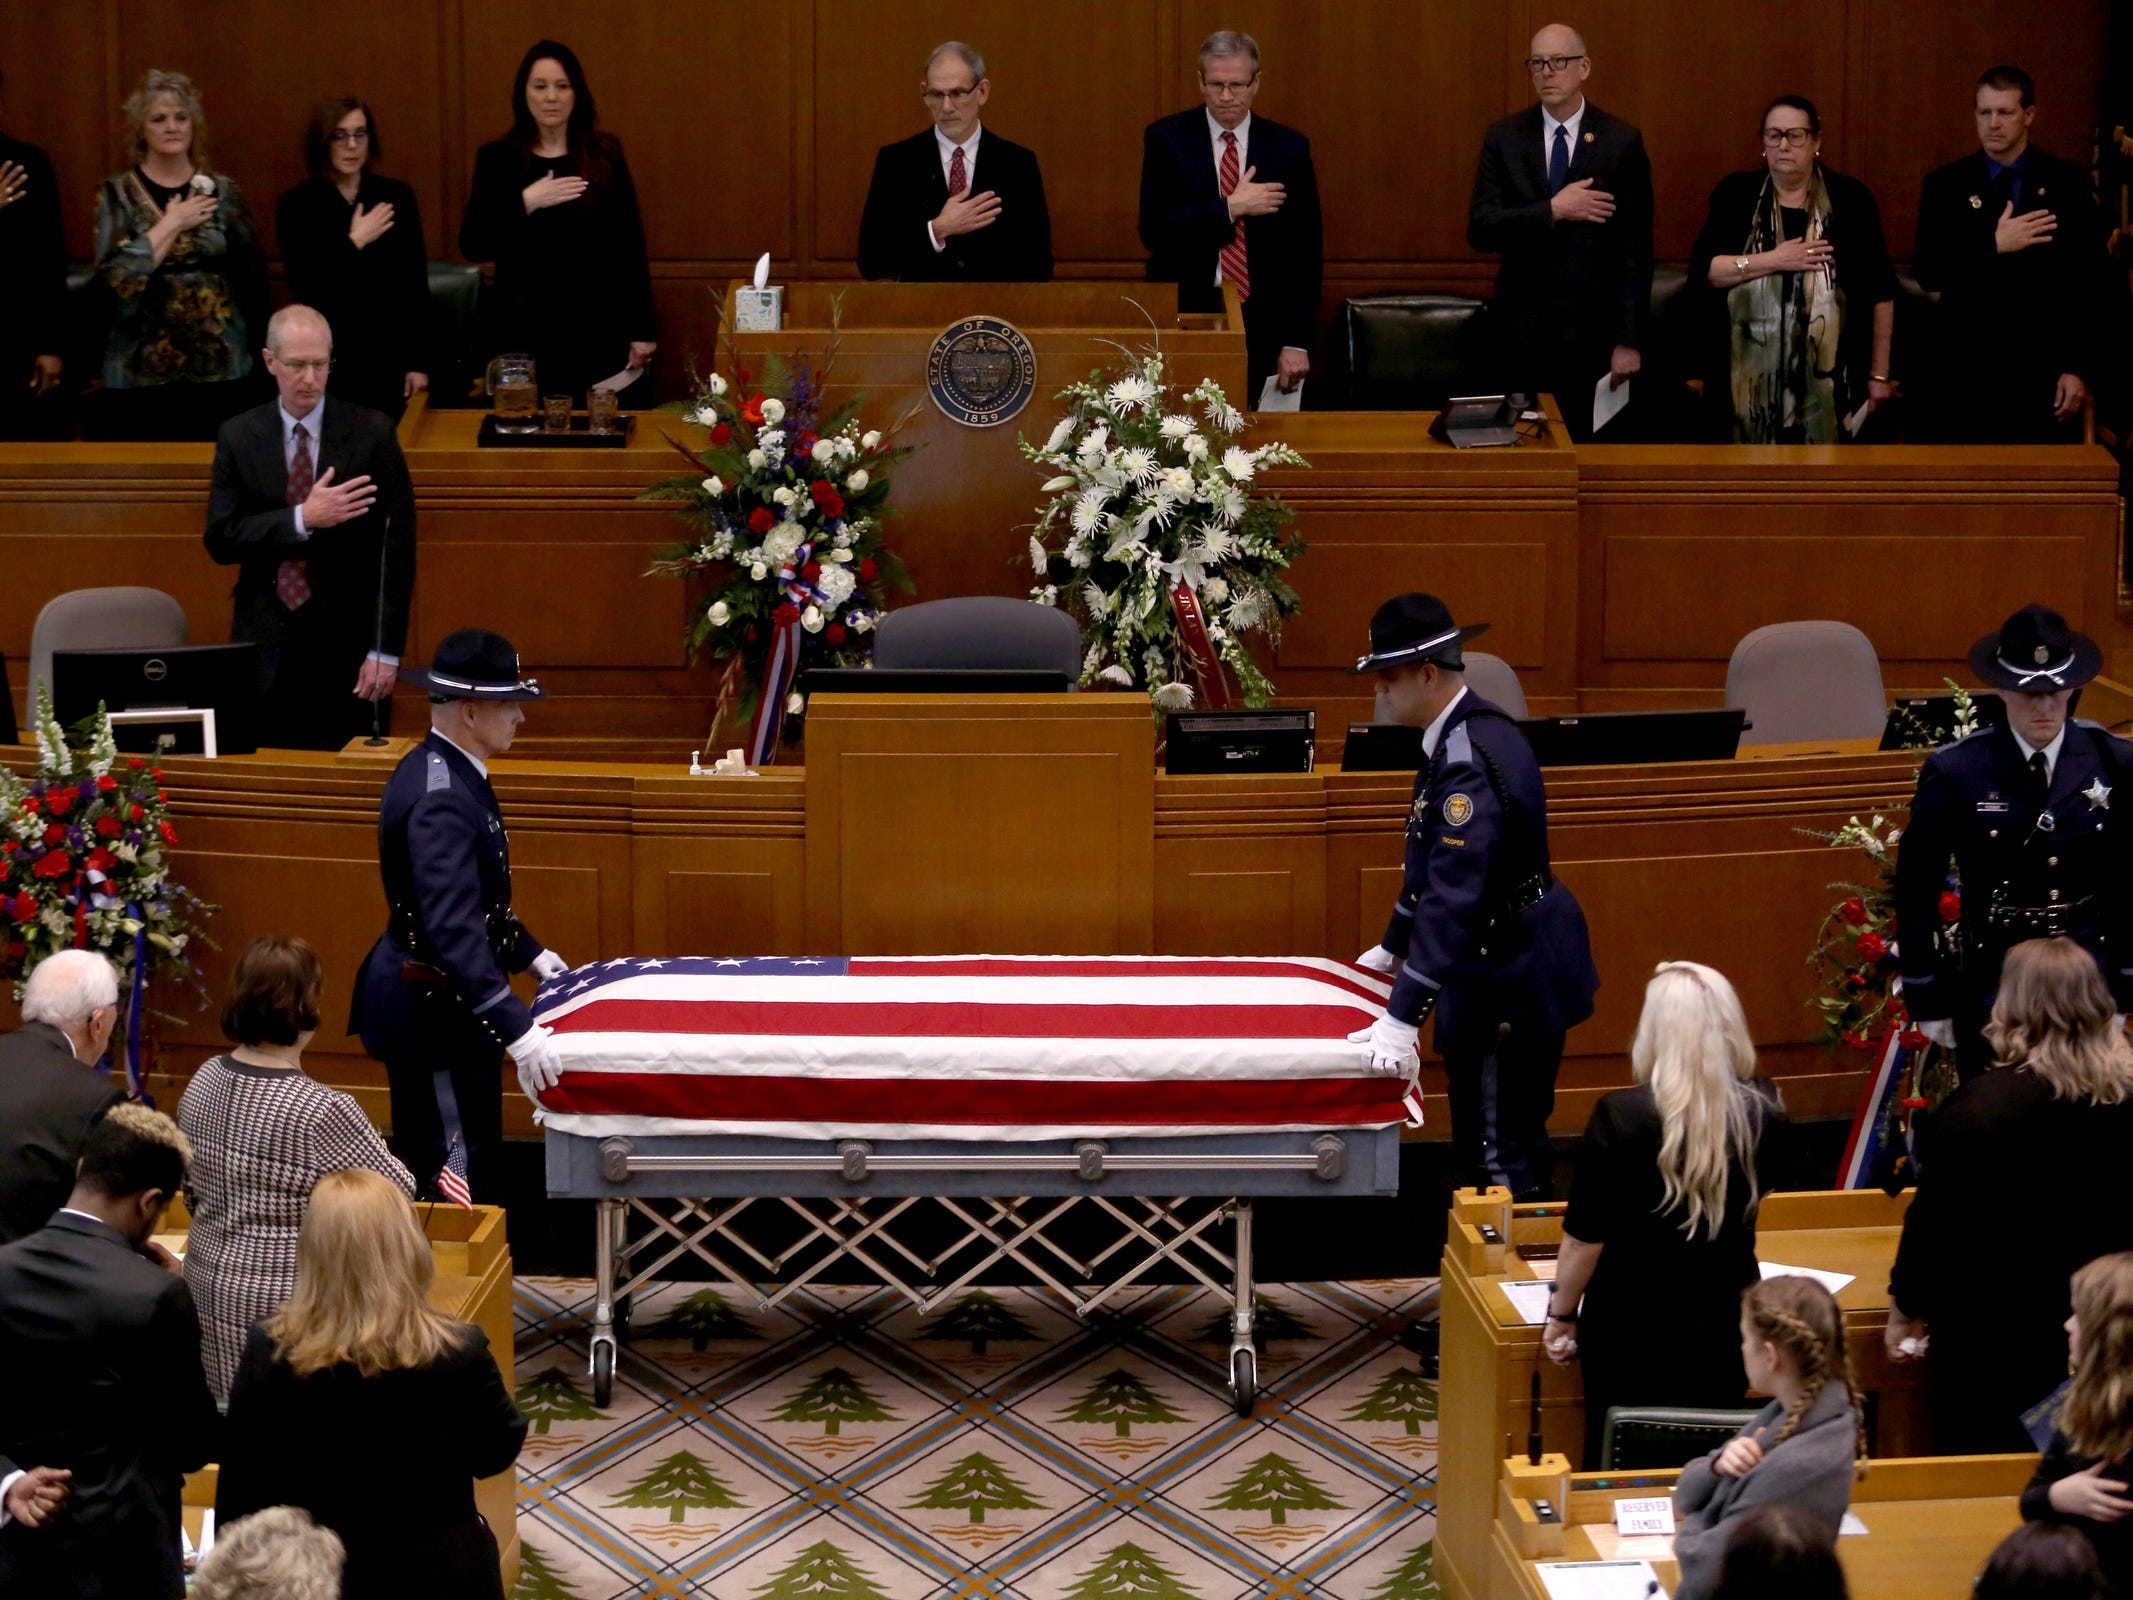 The casket is placed during the state funeral for Secretary of State Dennis Richardson at the Oregon State Capitol in Salem on Wednesday, March 6, 2019.